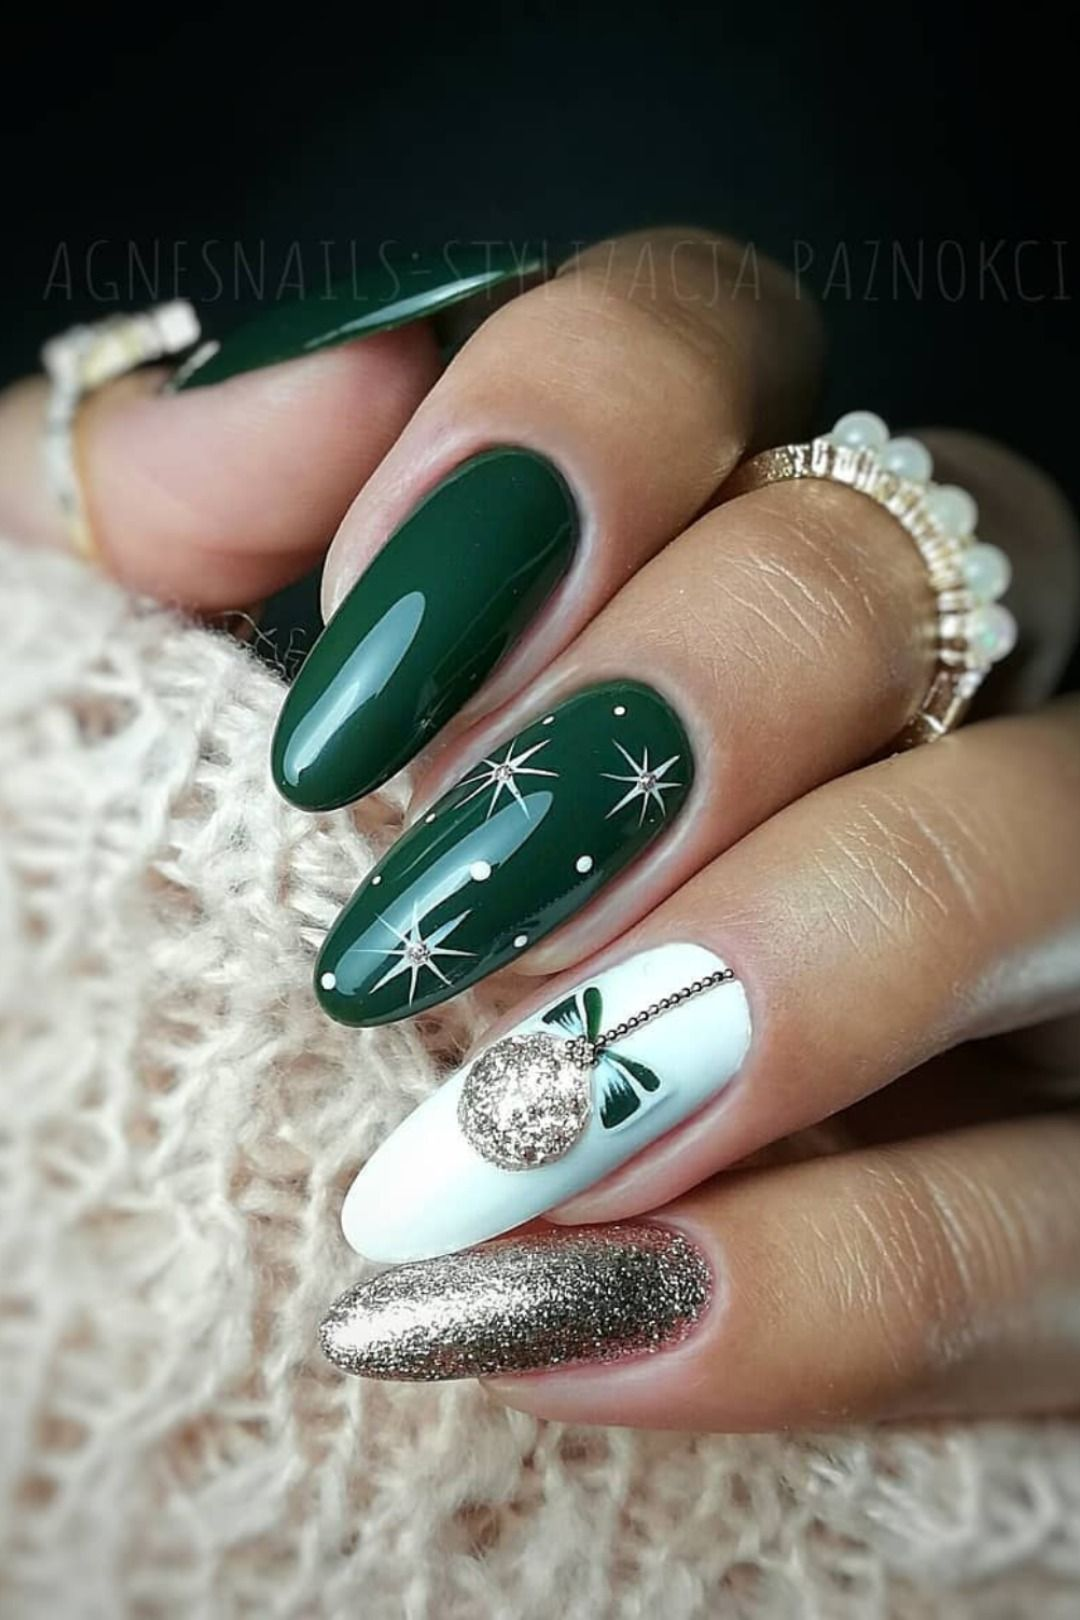 Beautiful Green Christmas Nails With White Snowflakes And Glitter Design Christmasnails Christmas Cute Christmas Nails Xmas Nails Christmas Nail Art Designs